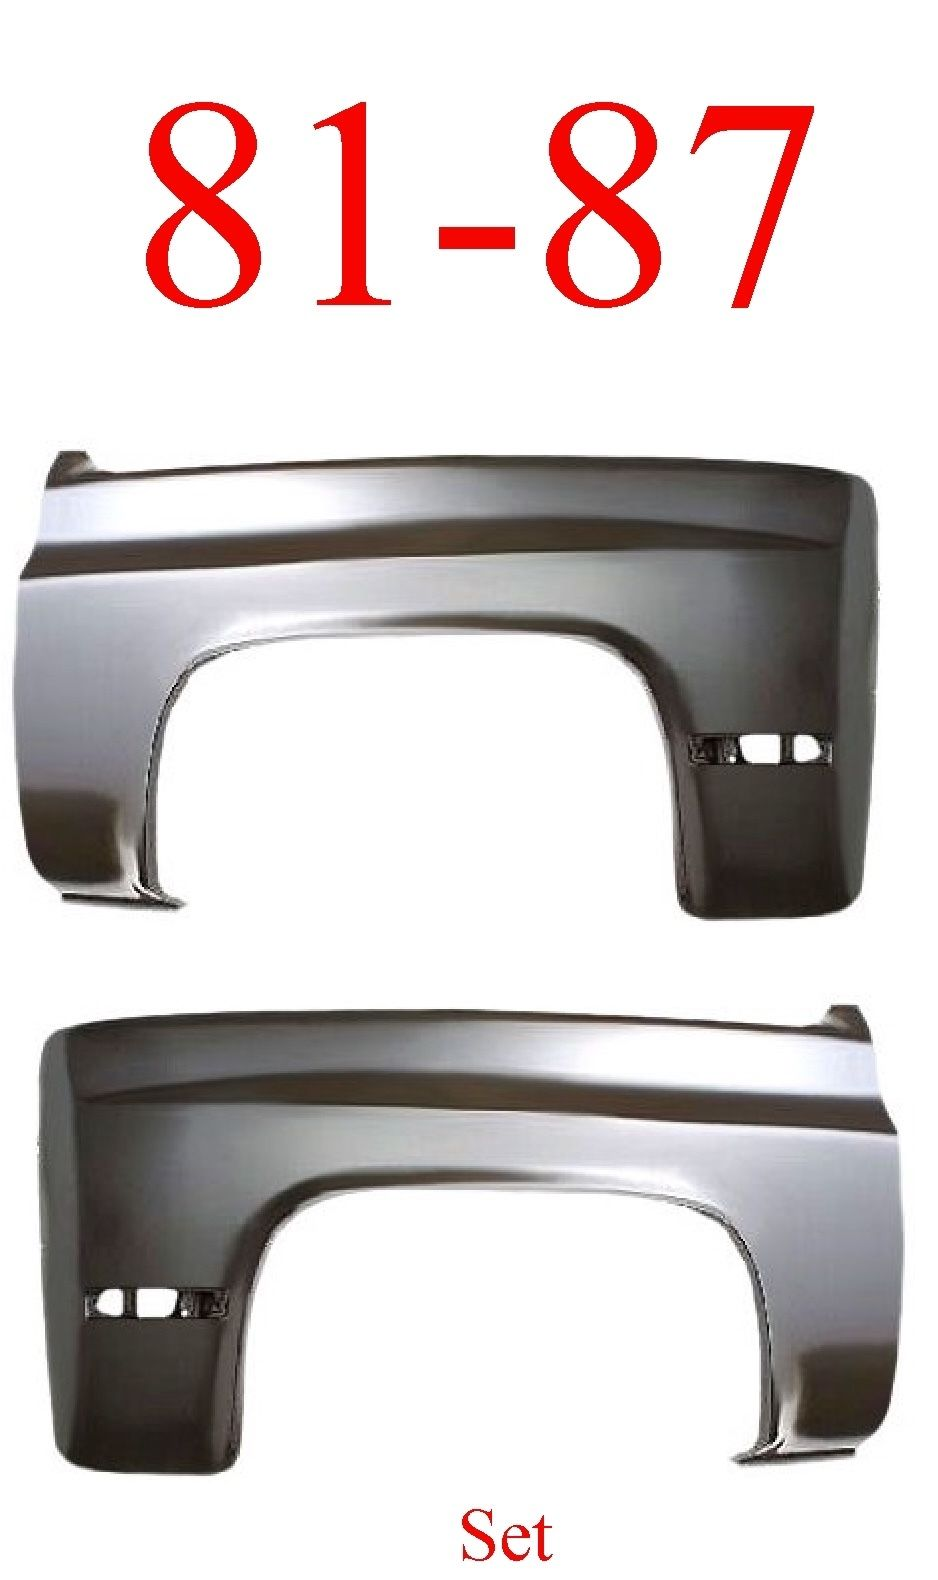 81-87 Chevy Front Fender Set